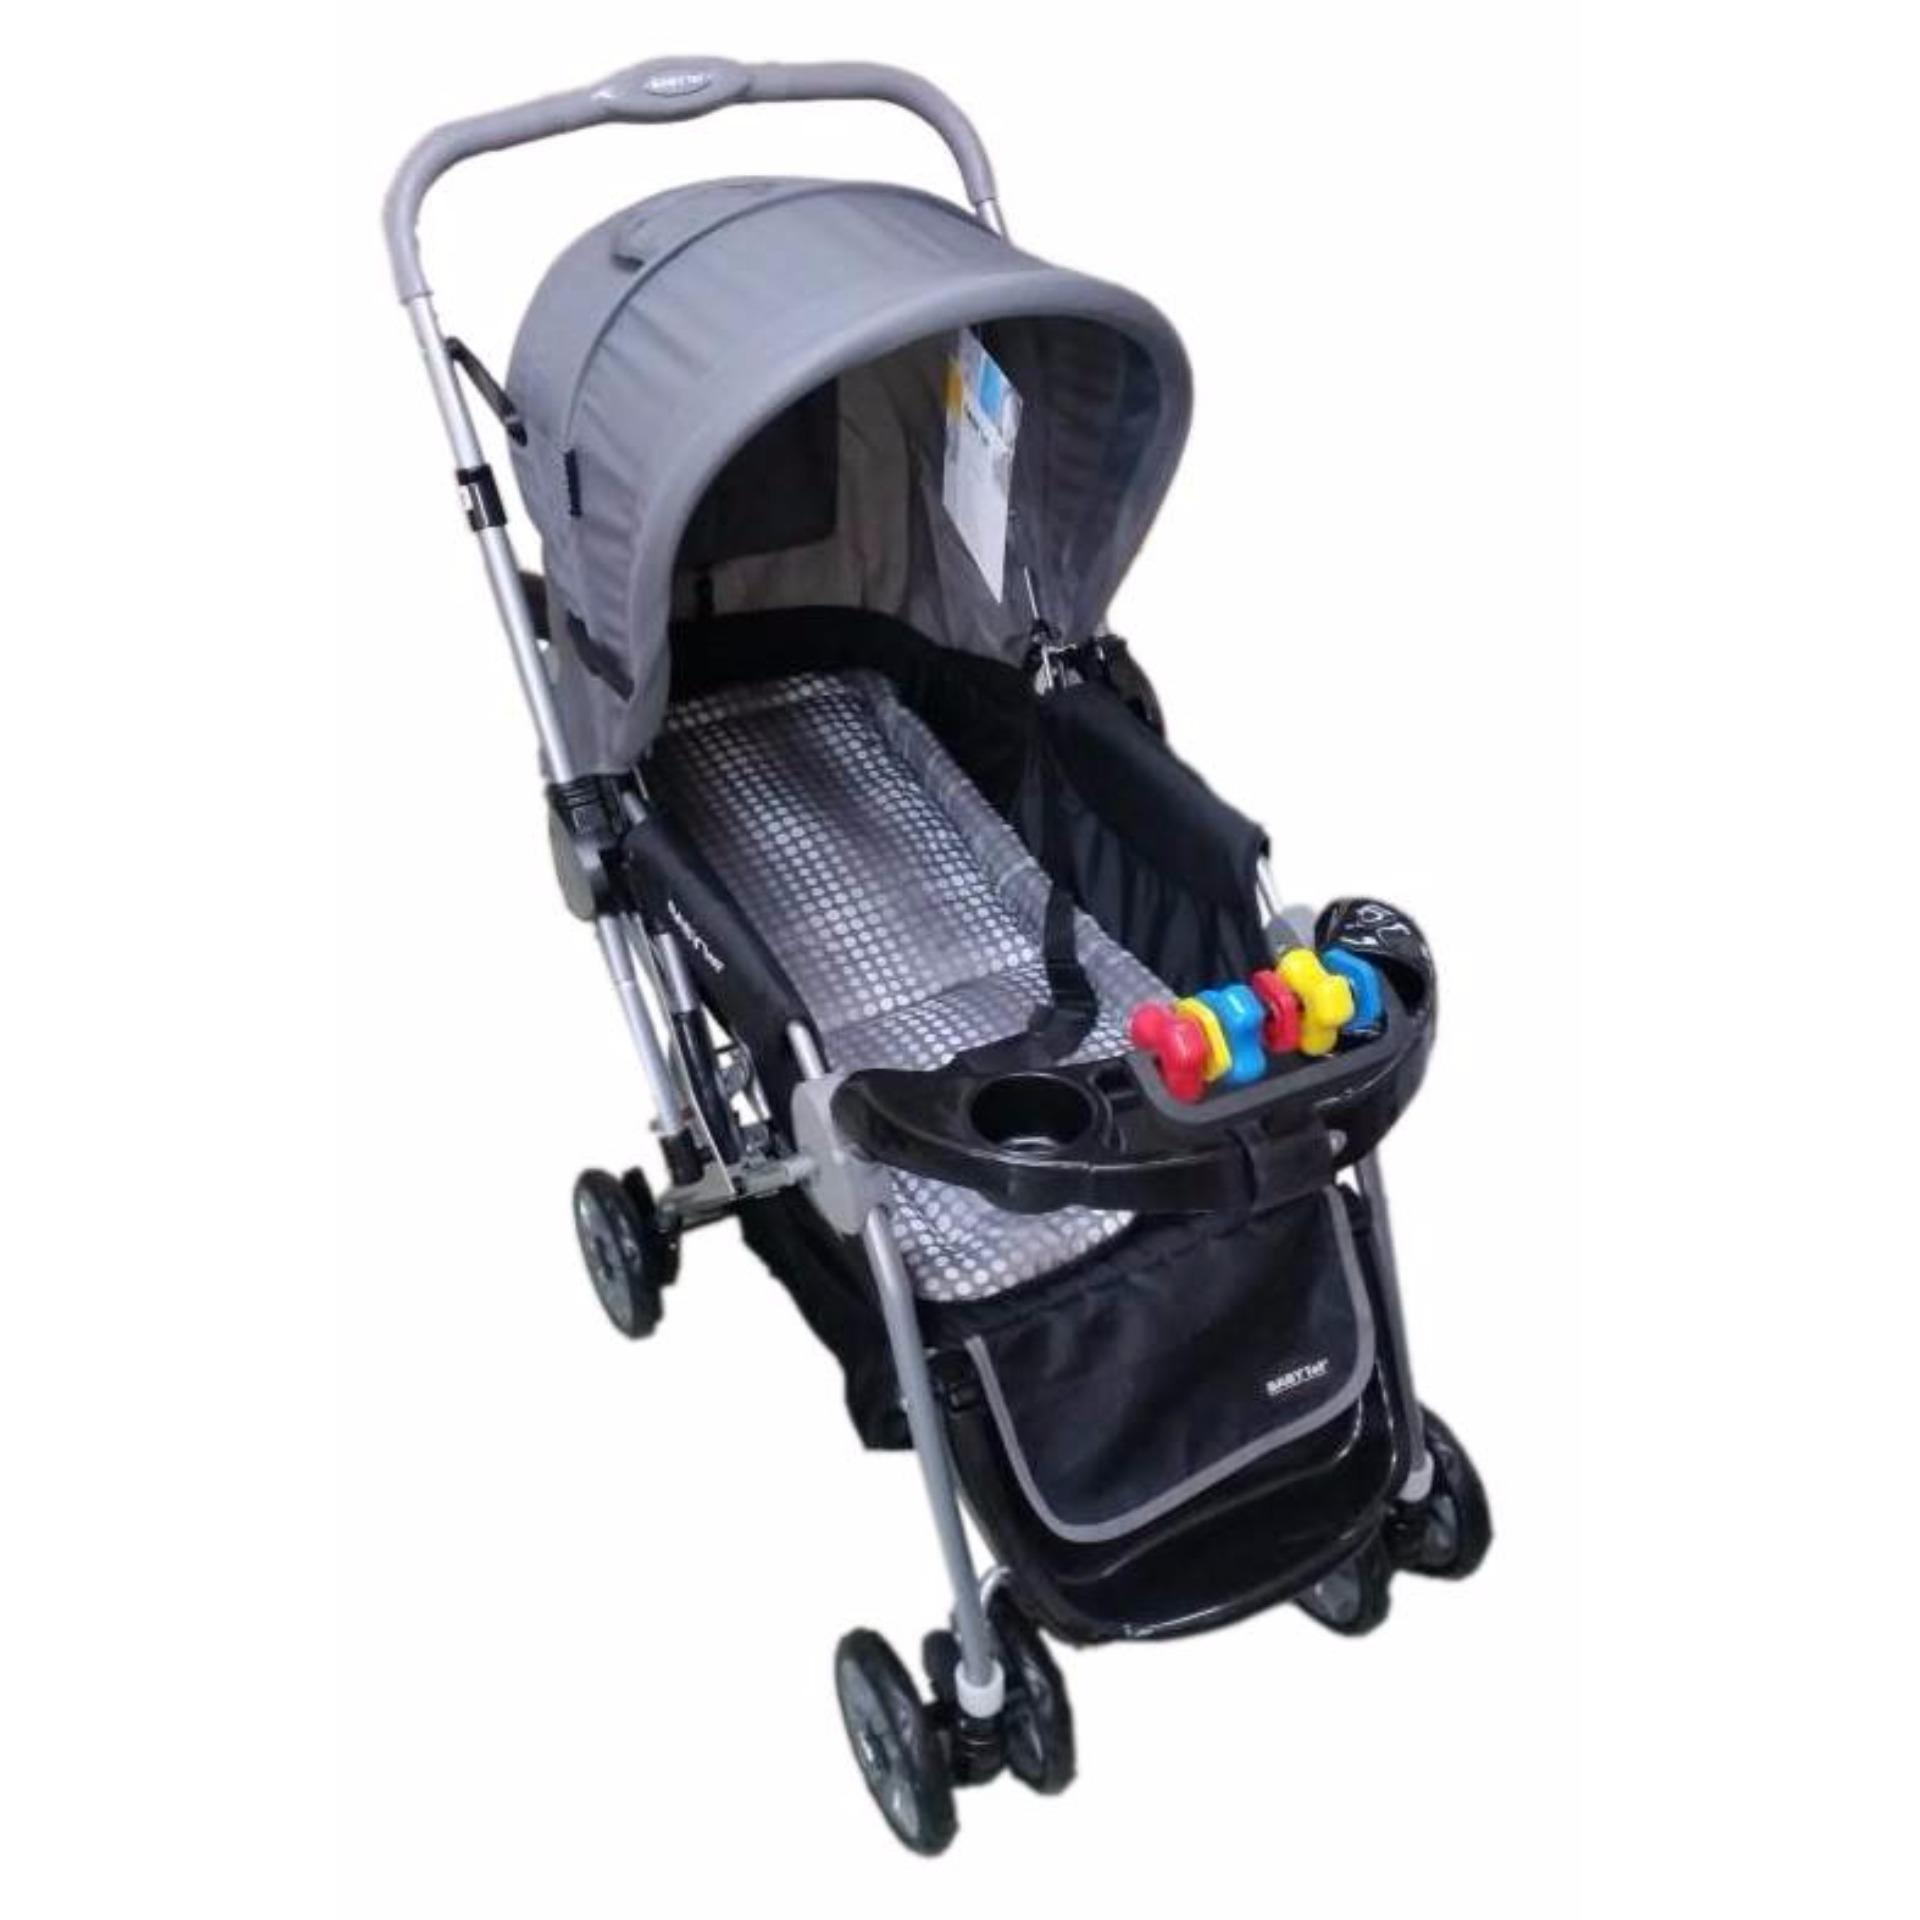 Crib for sale bacolod - Baby 1st Cd S036b Stroller W Toy And Reversable Handle Grey